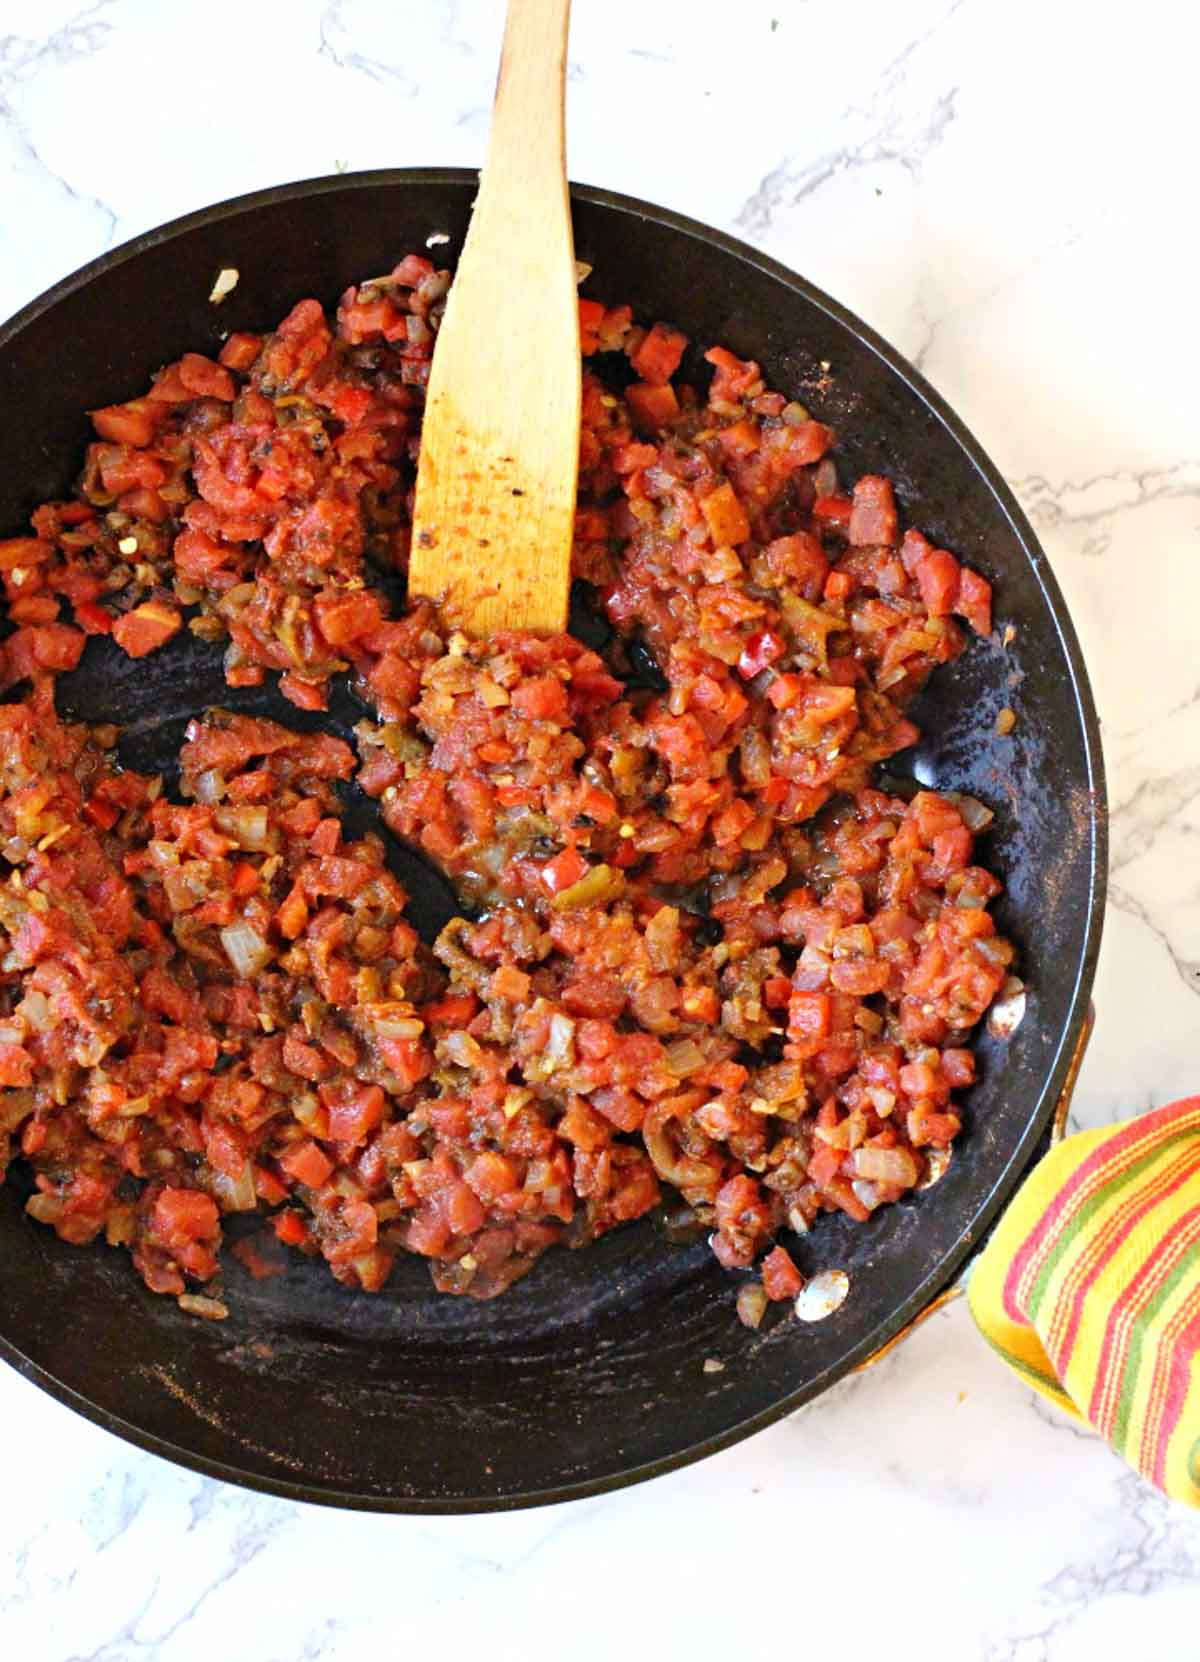 Making sofrito for spicy meatloaf in a fry pan